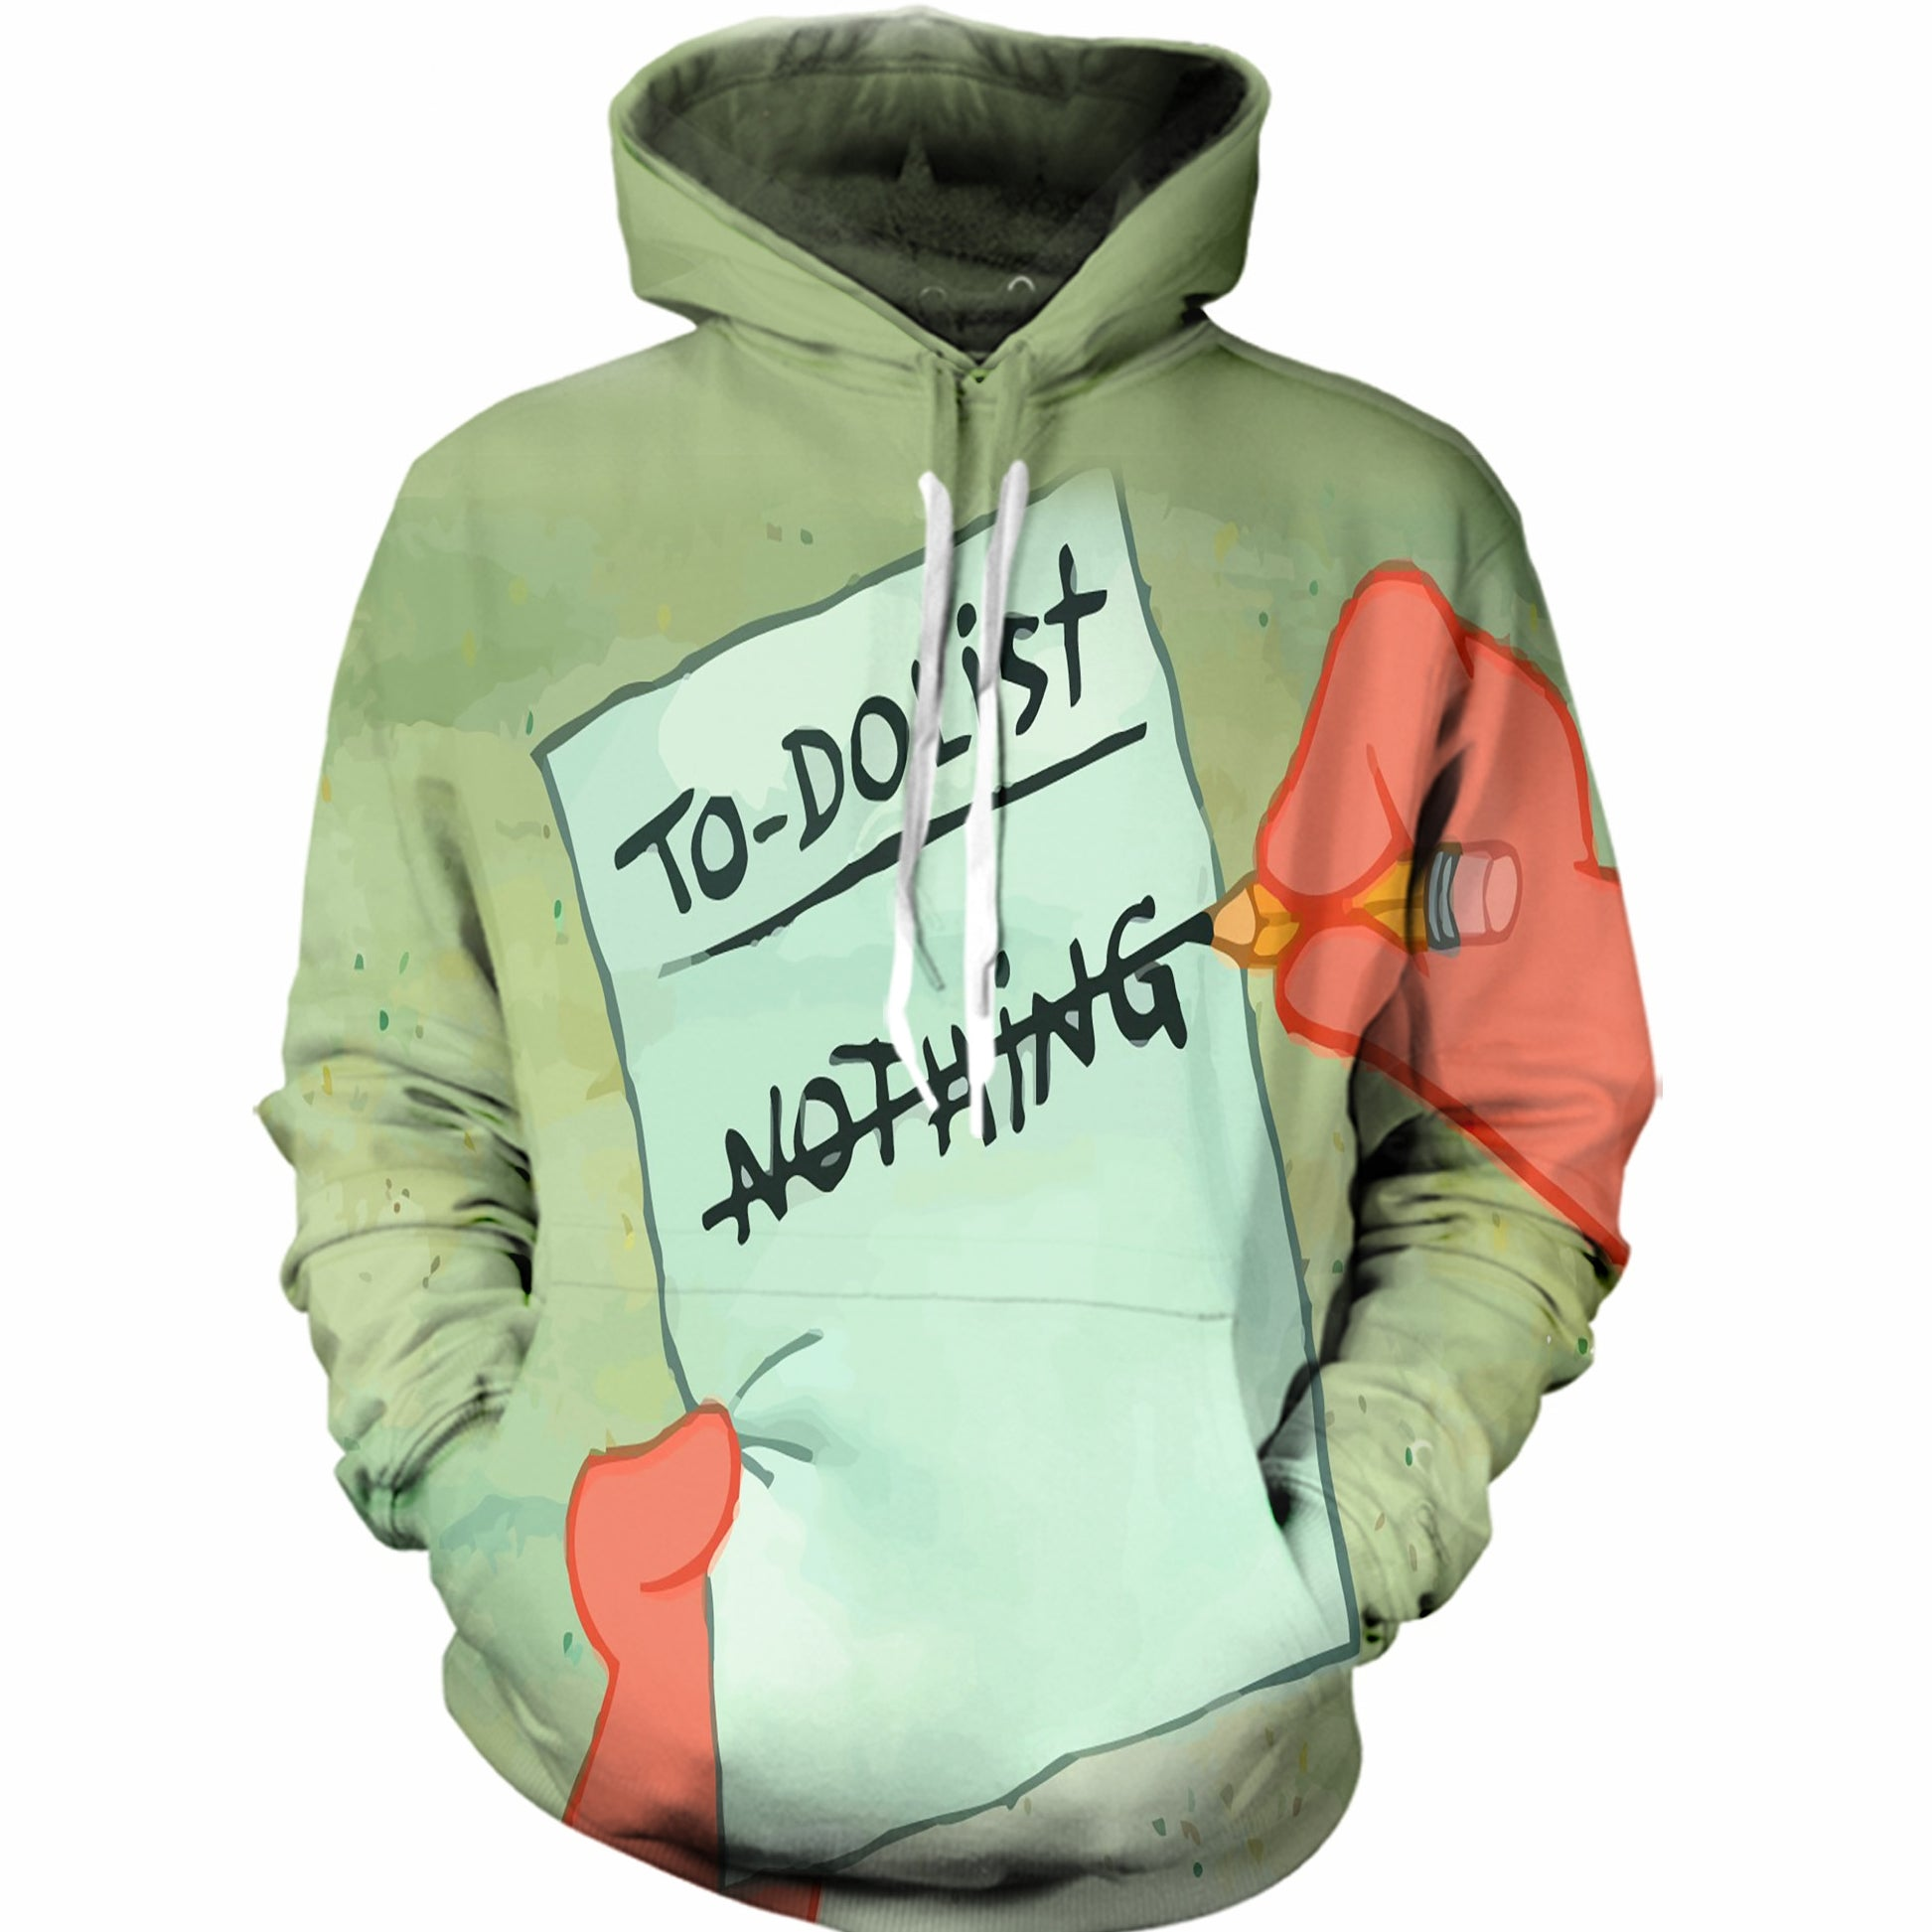 To Do List Hoodie